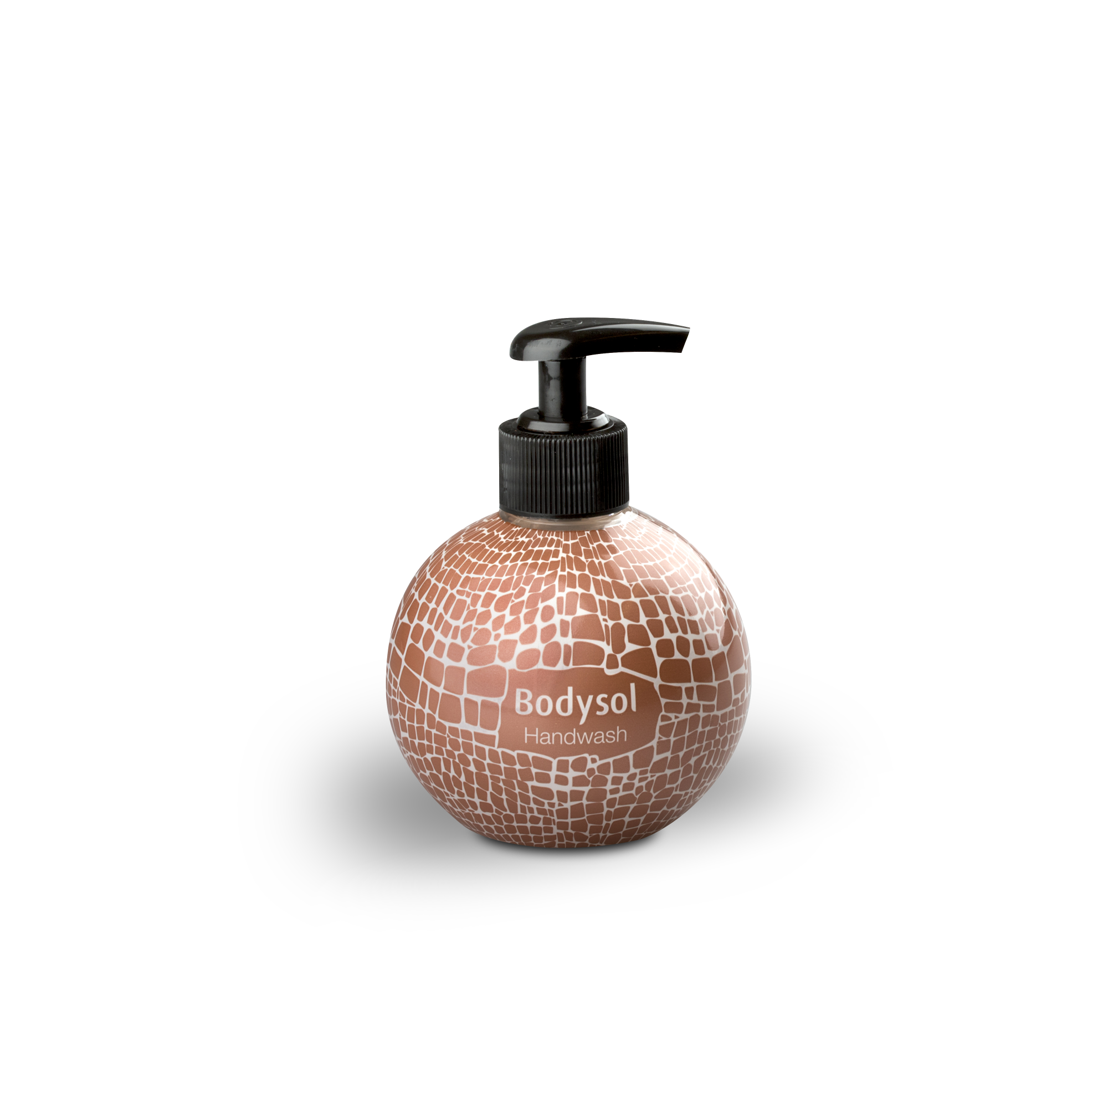 Bodysol - Limited Edition Croco - Copper - Handwash - €5,99